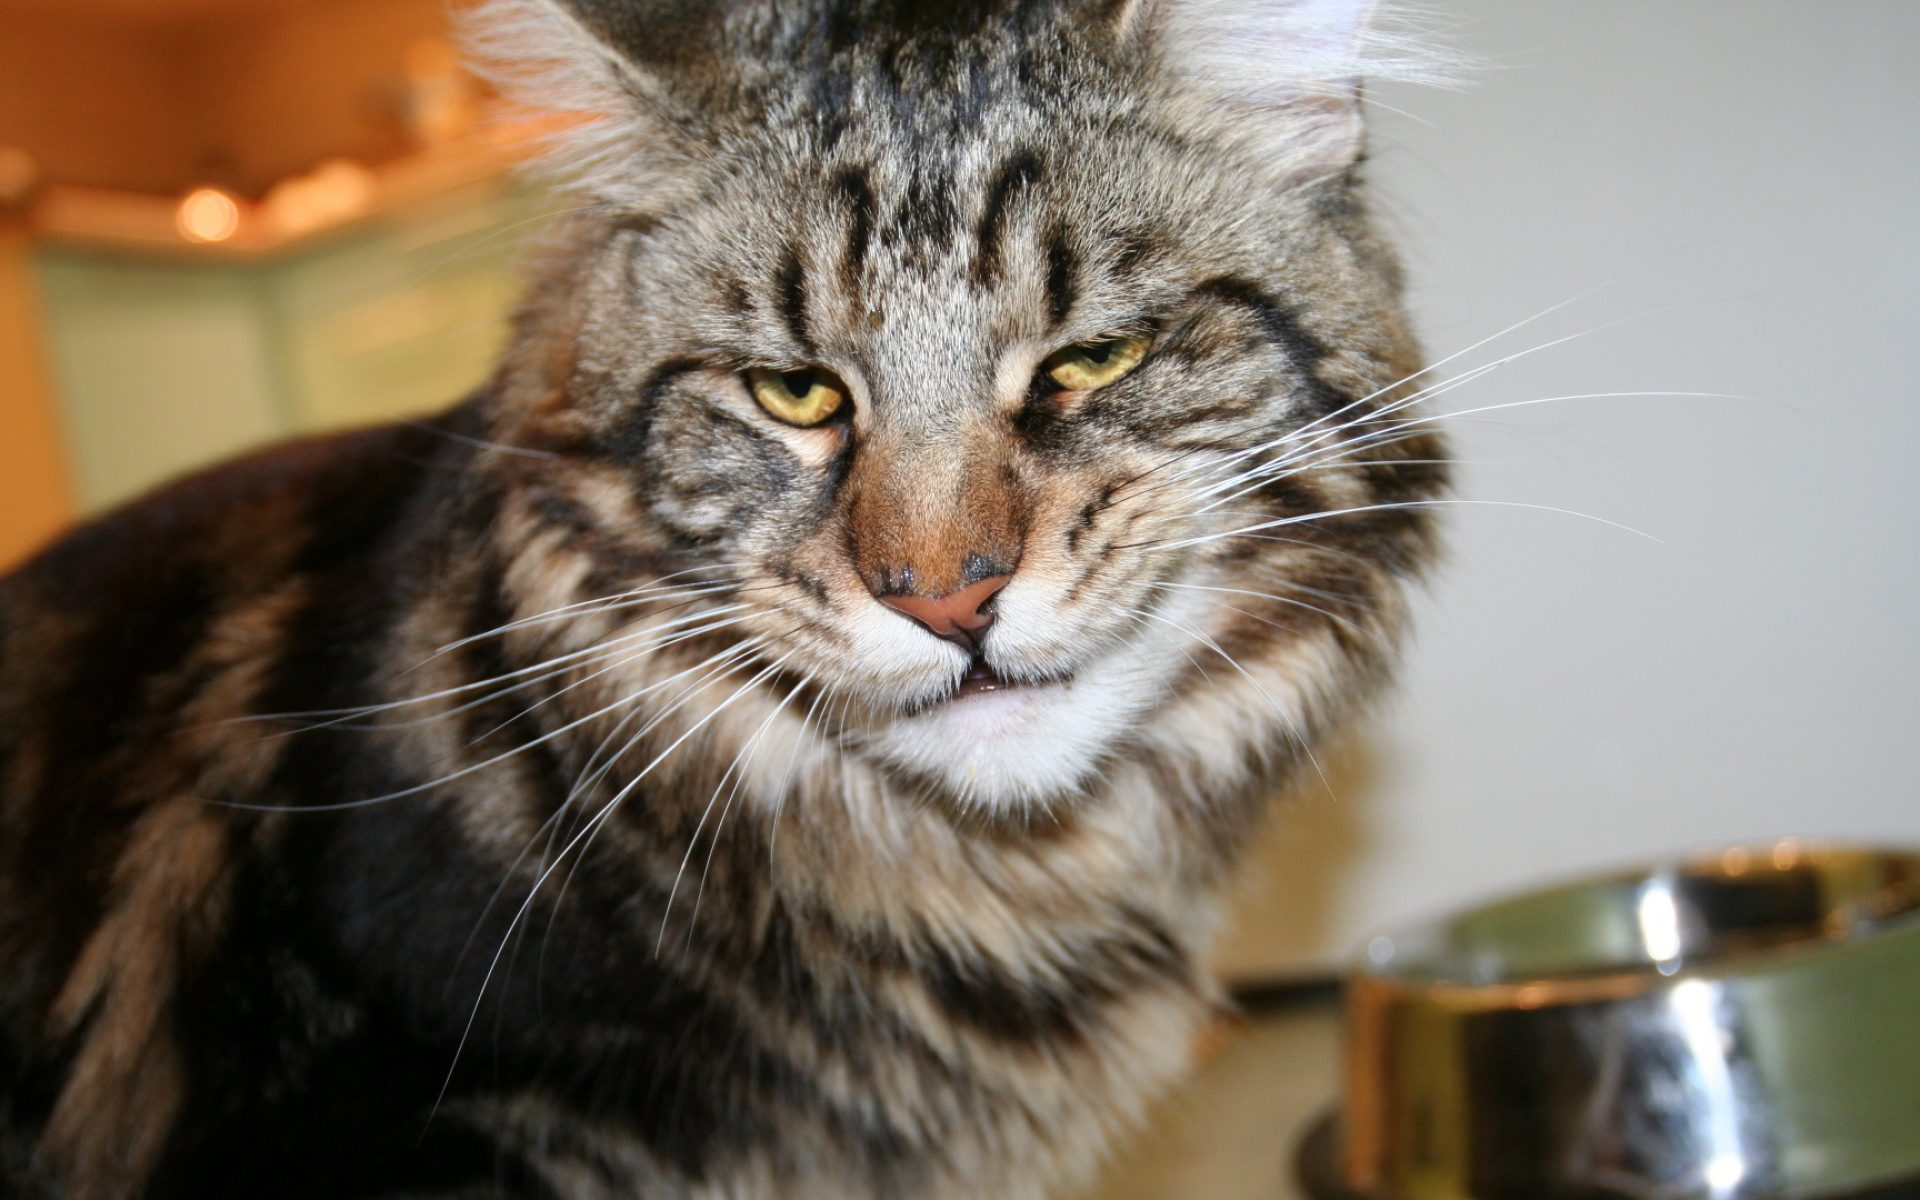 cat-maine-coon-face-frustration-3840x2400